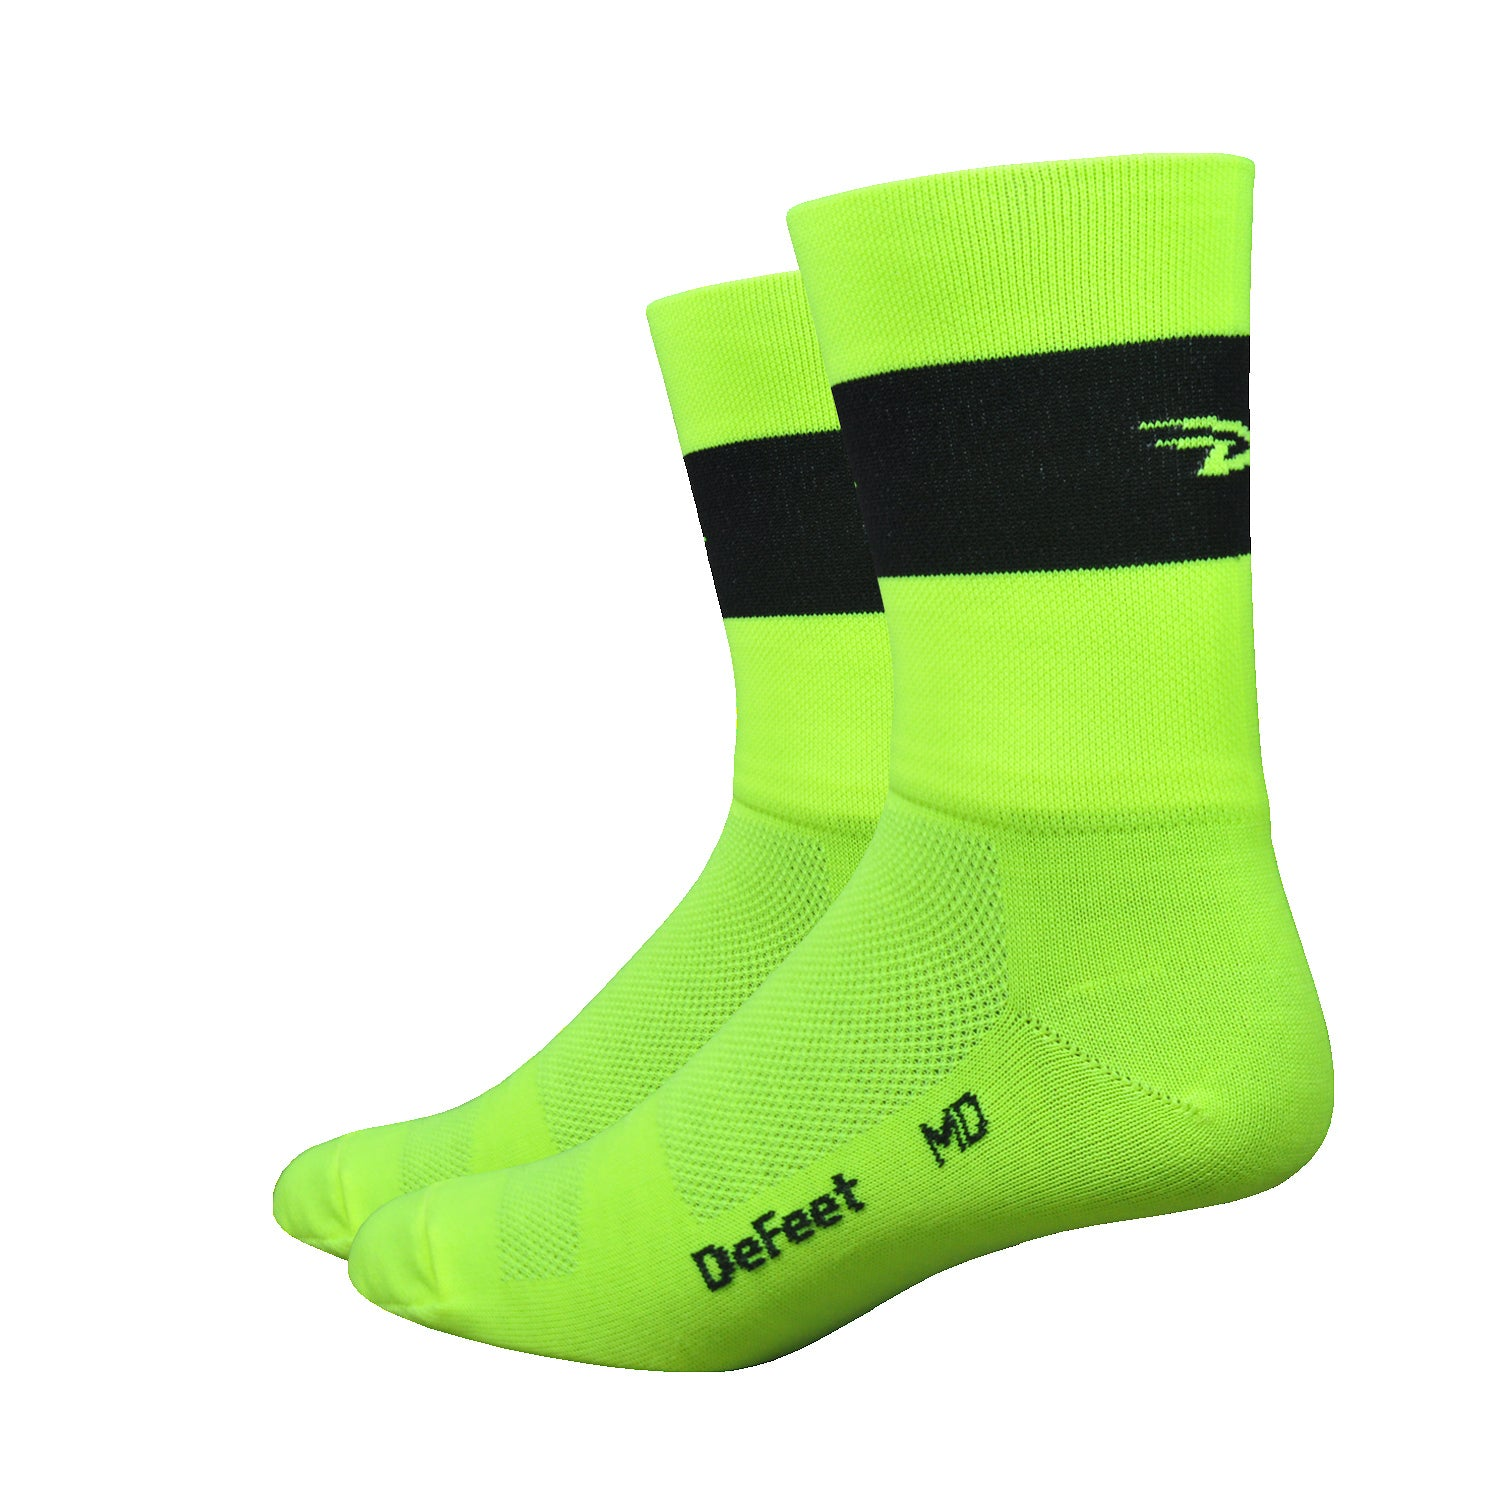 "Aireator 5"" Team DeFeet (Neon Yellow w/Black Stripe)"